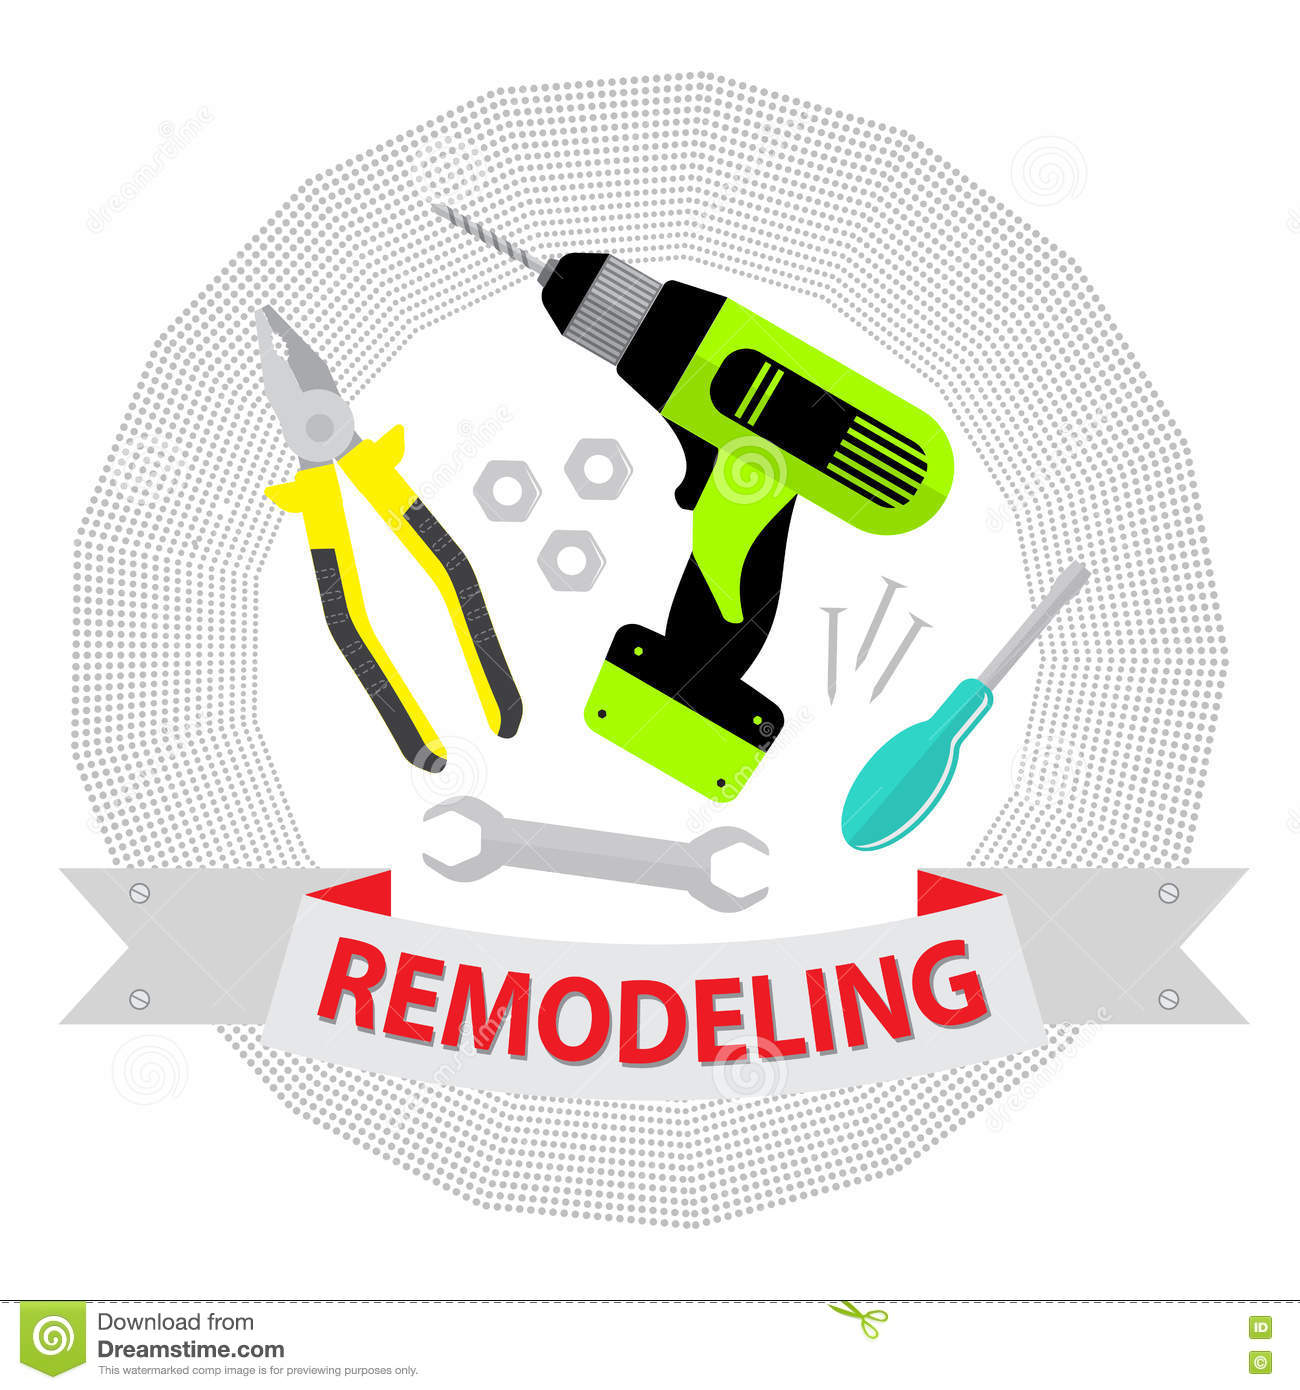 Home remodeling logo remodeling logo clipart - Set Of Repair Tools On White Background Logo Home Repair Service Royalty Free Stock